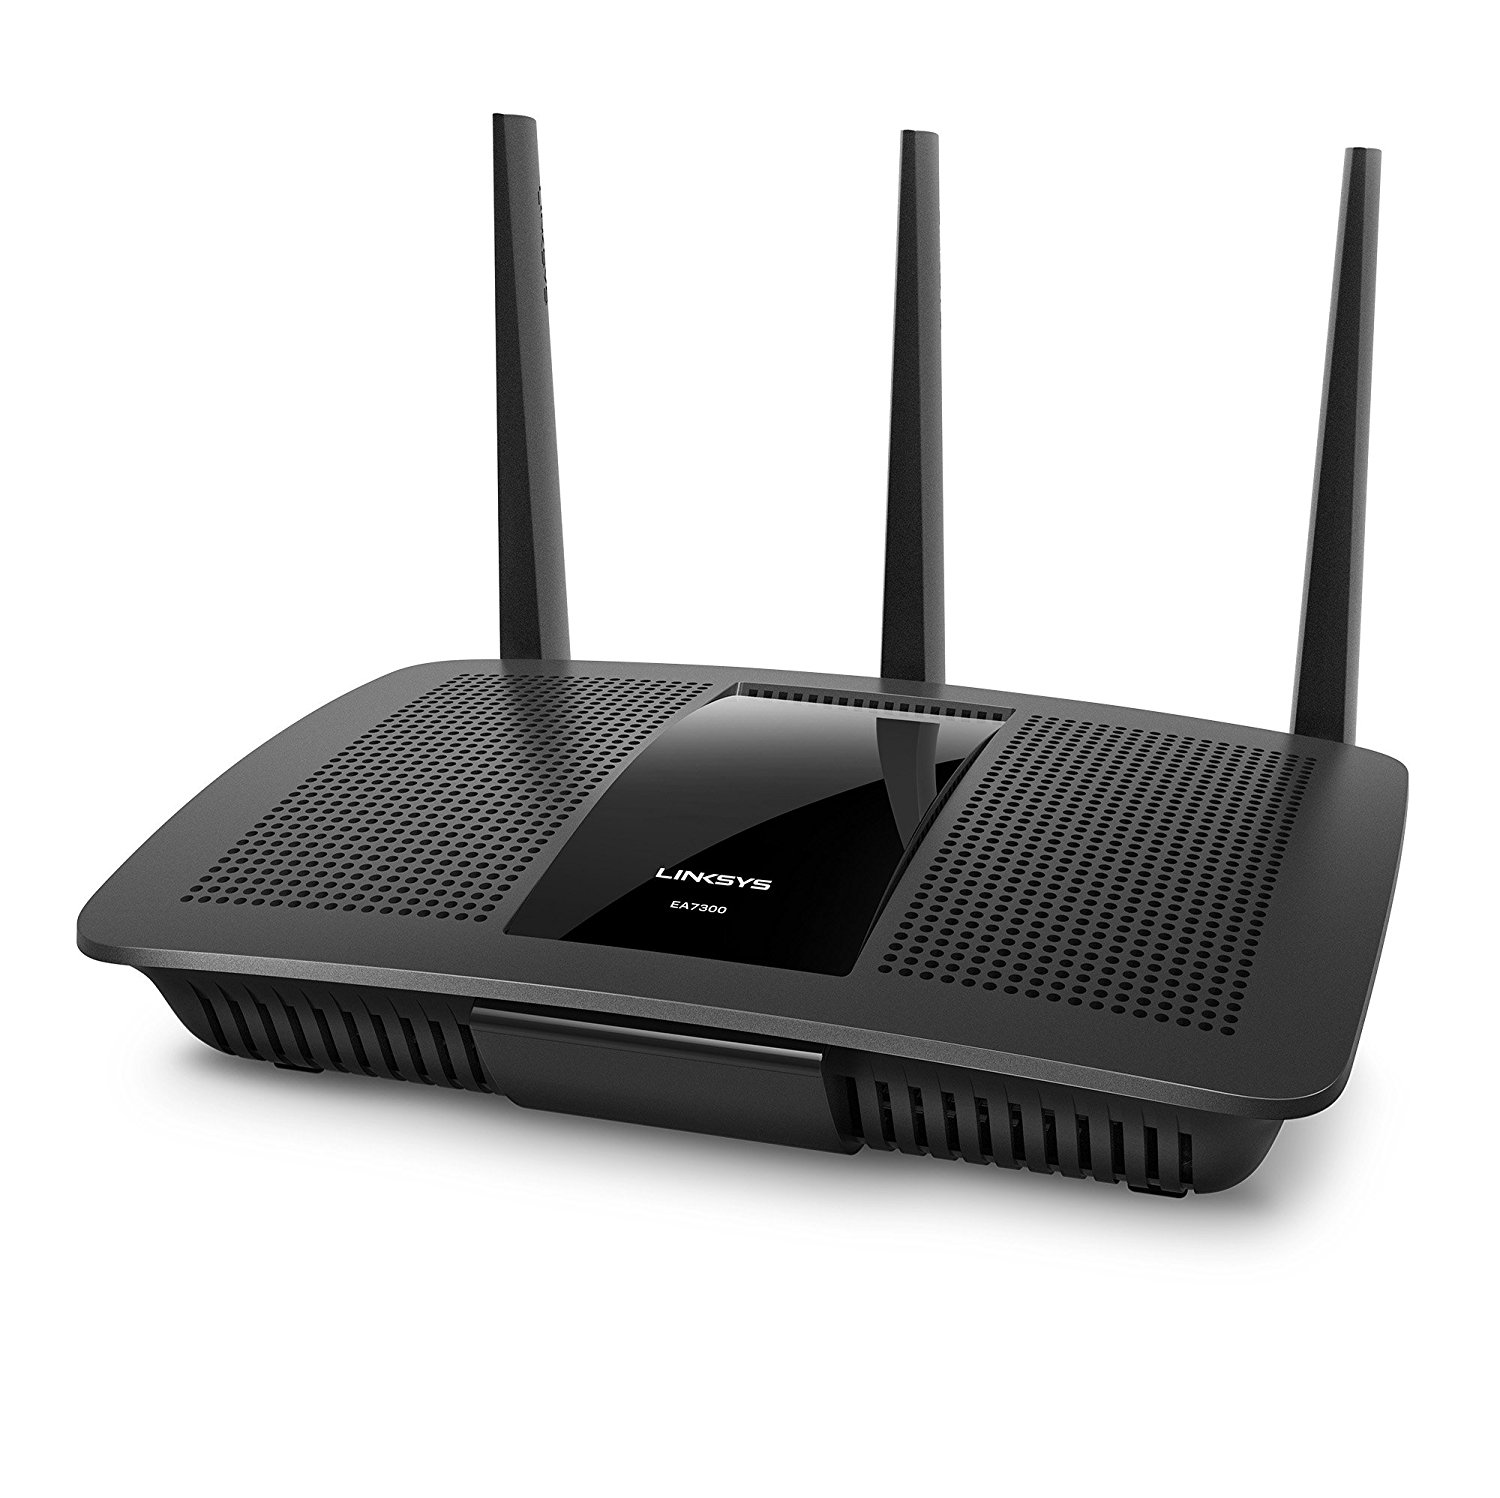 Driver for Linksys WRT160NL v1.0 Router